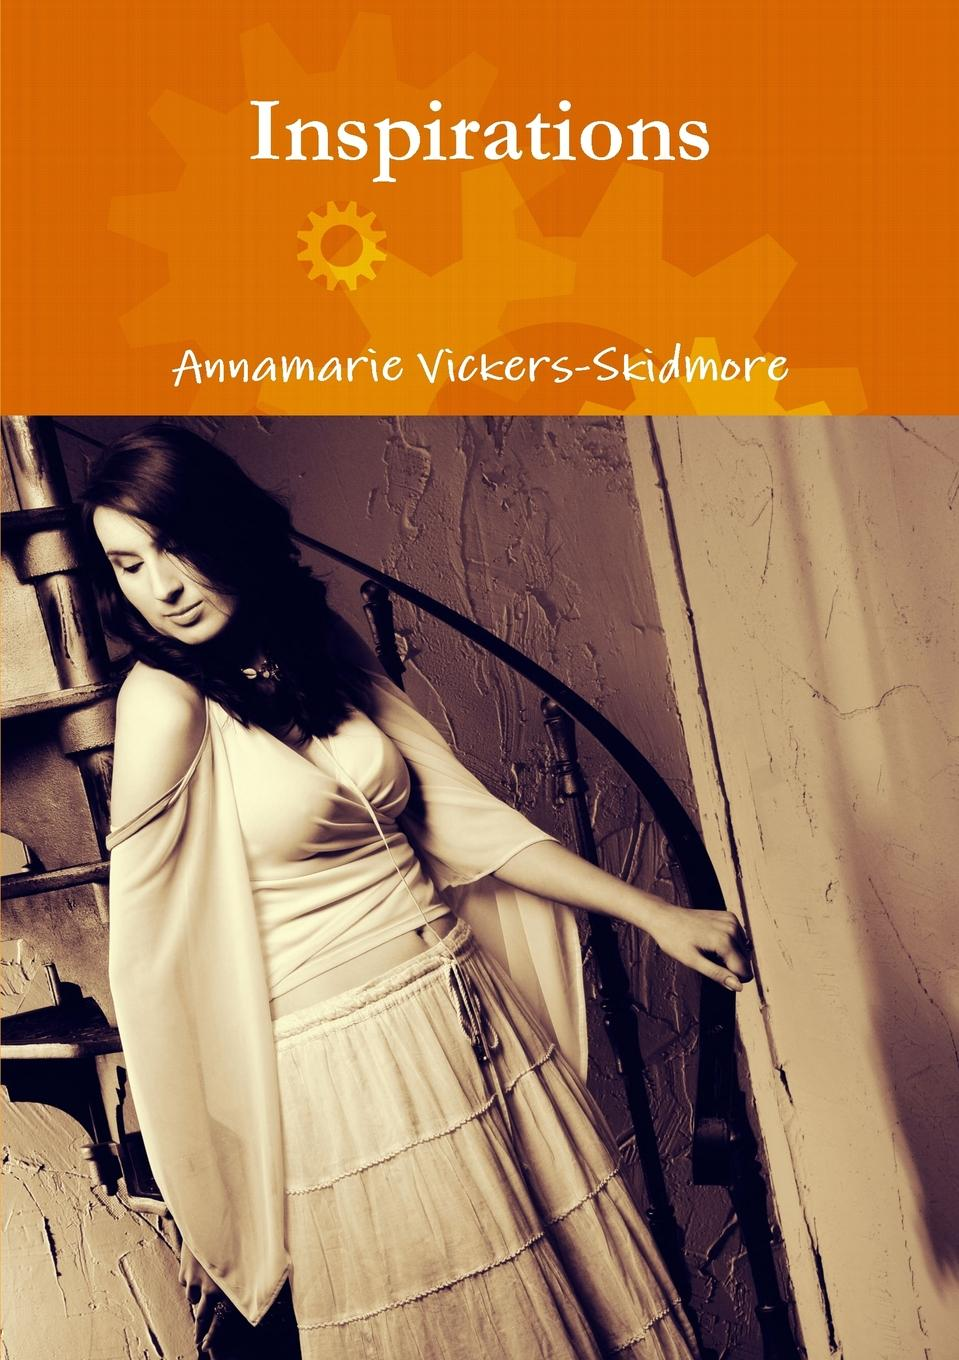 Annamarie Vickers-Skidmore Inspirations charents yeghishe poems of yeghishe charent